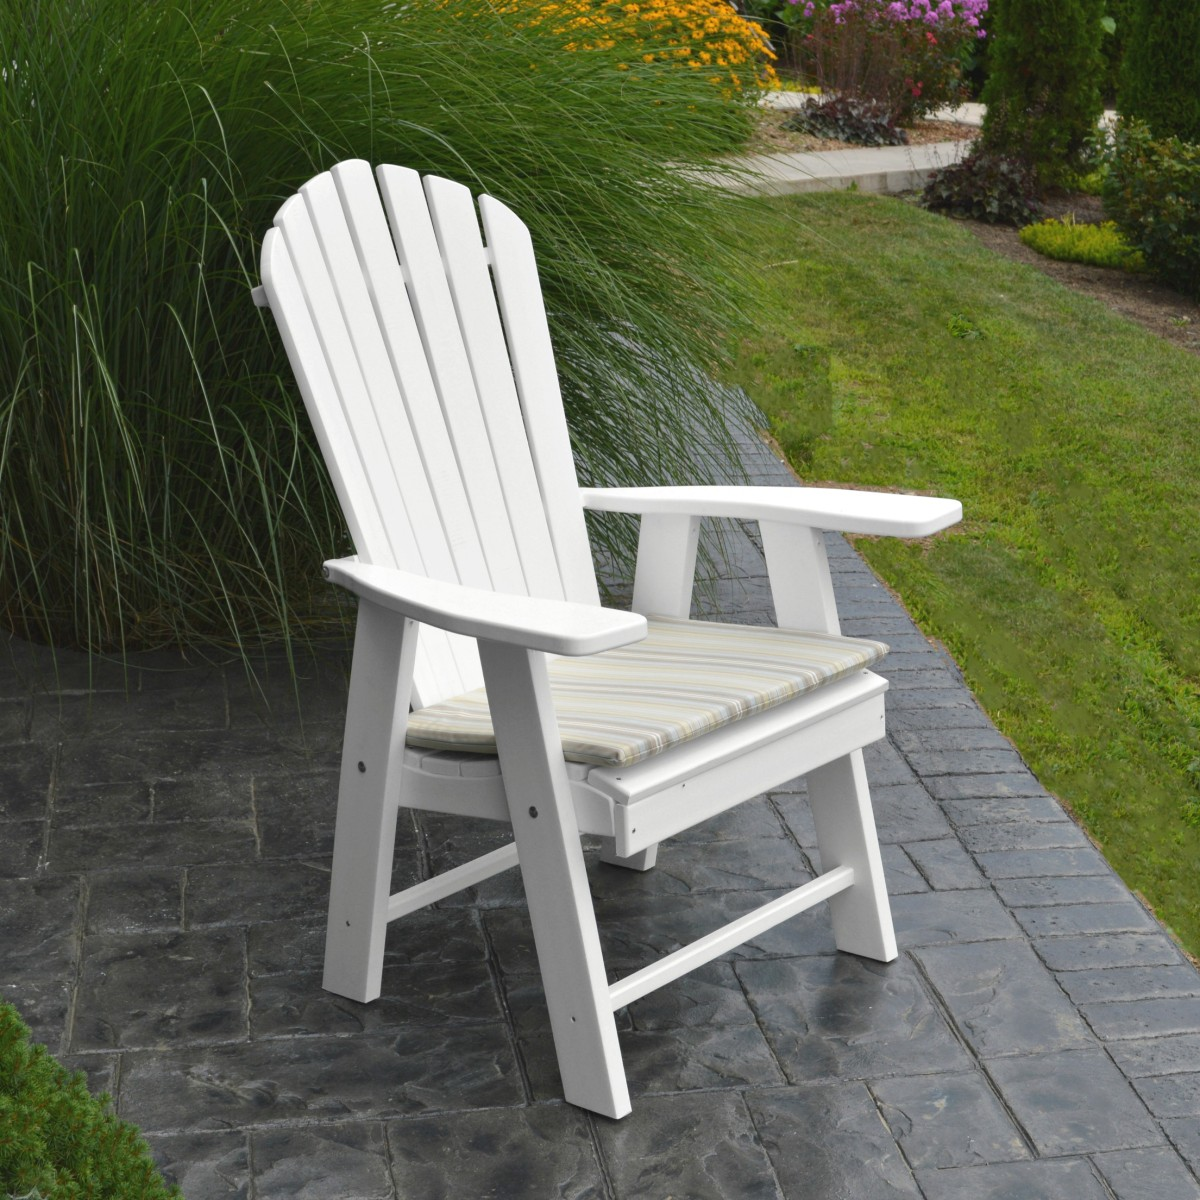 Upright Adirondack Chair 187 Amish Woodwork